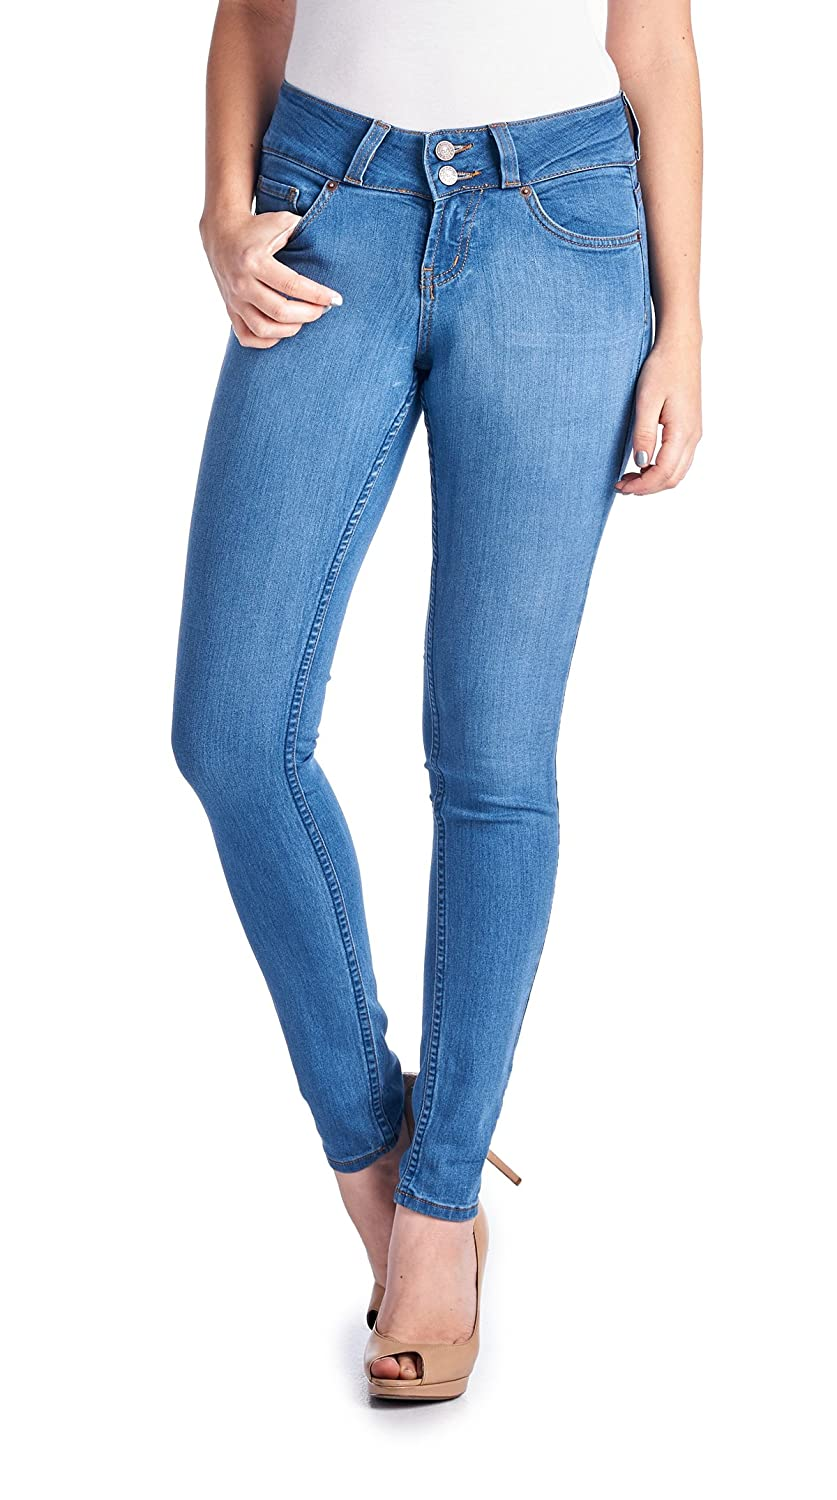 Parkers Jeans Women's Stretch Double Button Mid Rise Skinny Jeans